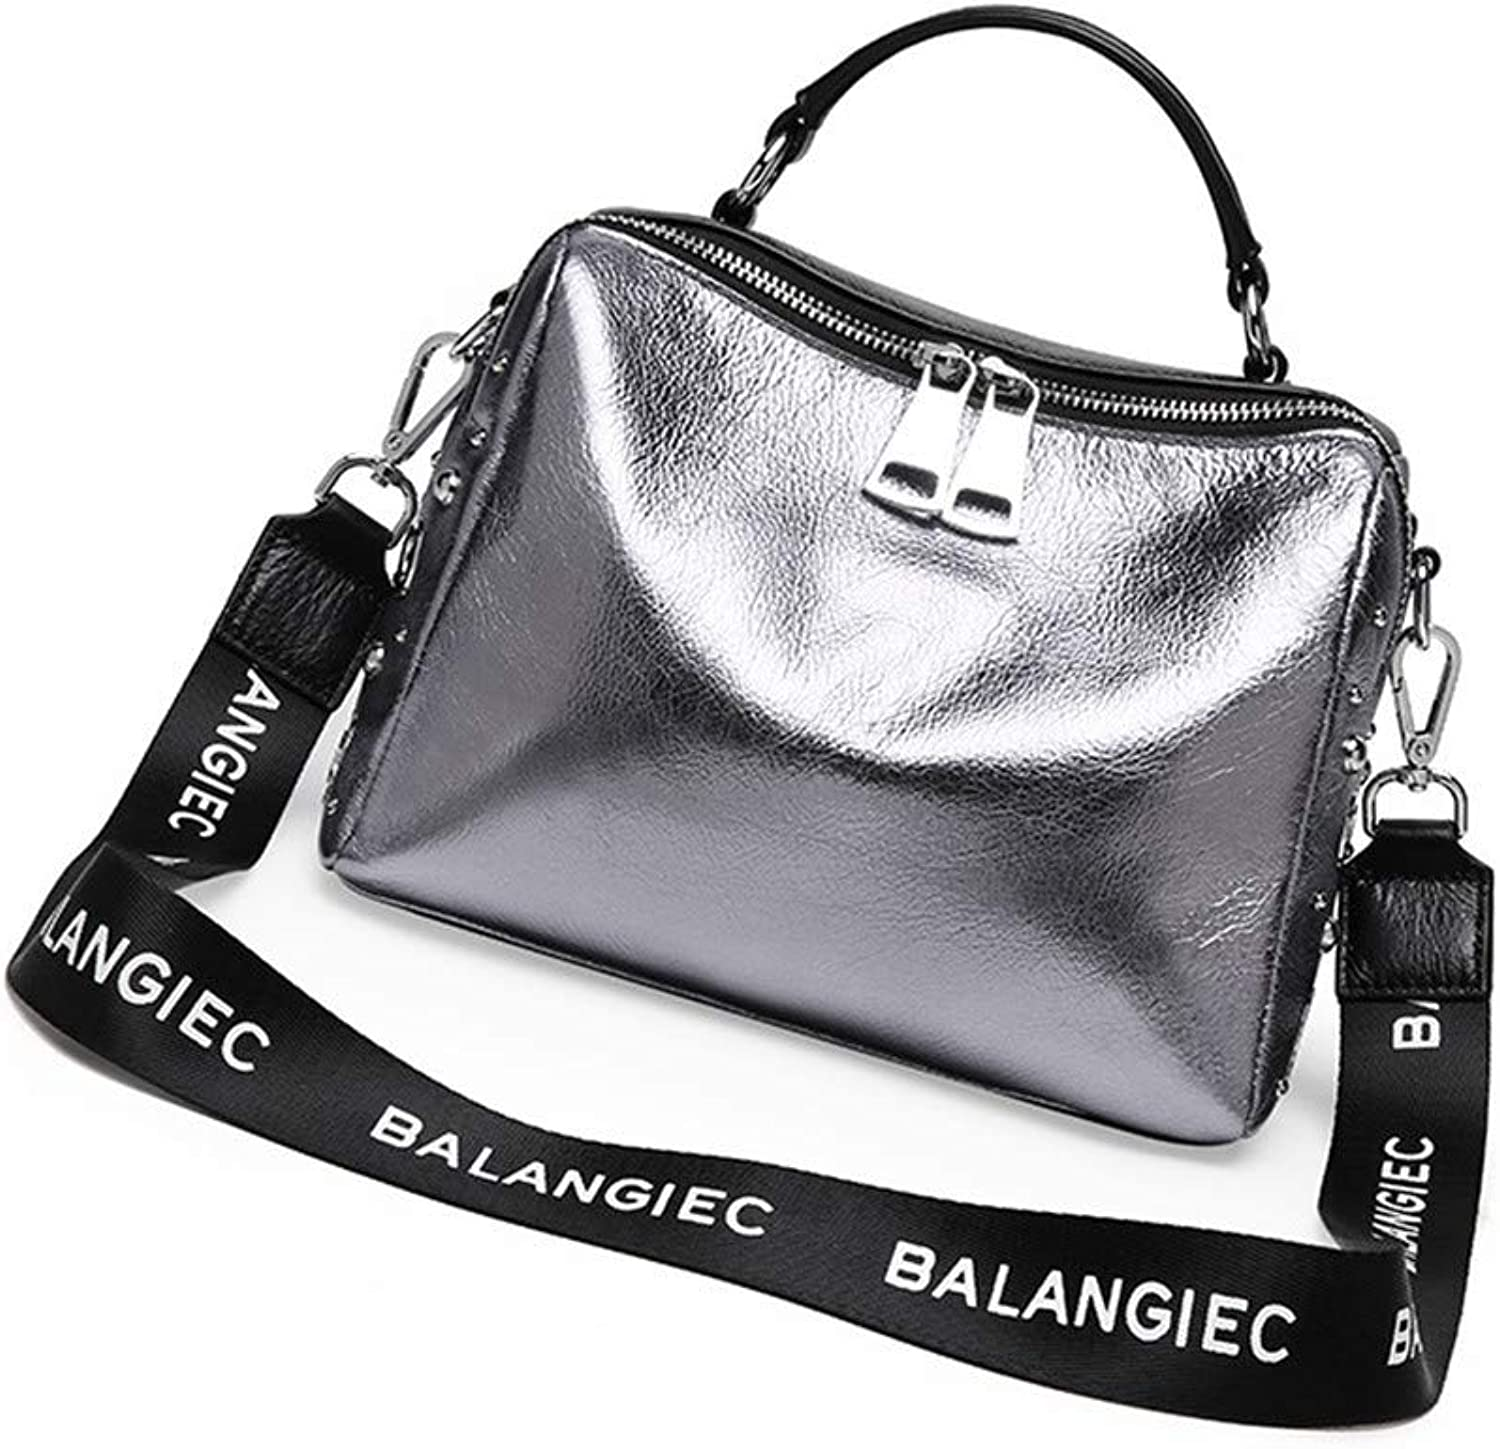 Sturdy Fashian Leather Handbags New Soft Leather Handbag Simple Shoulder Handbag Messenger Handbag Large Capacity (color   Silver)